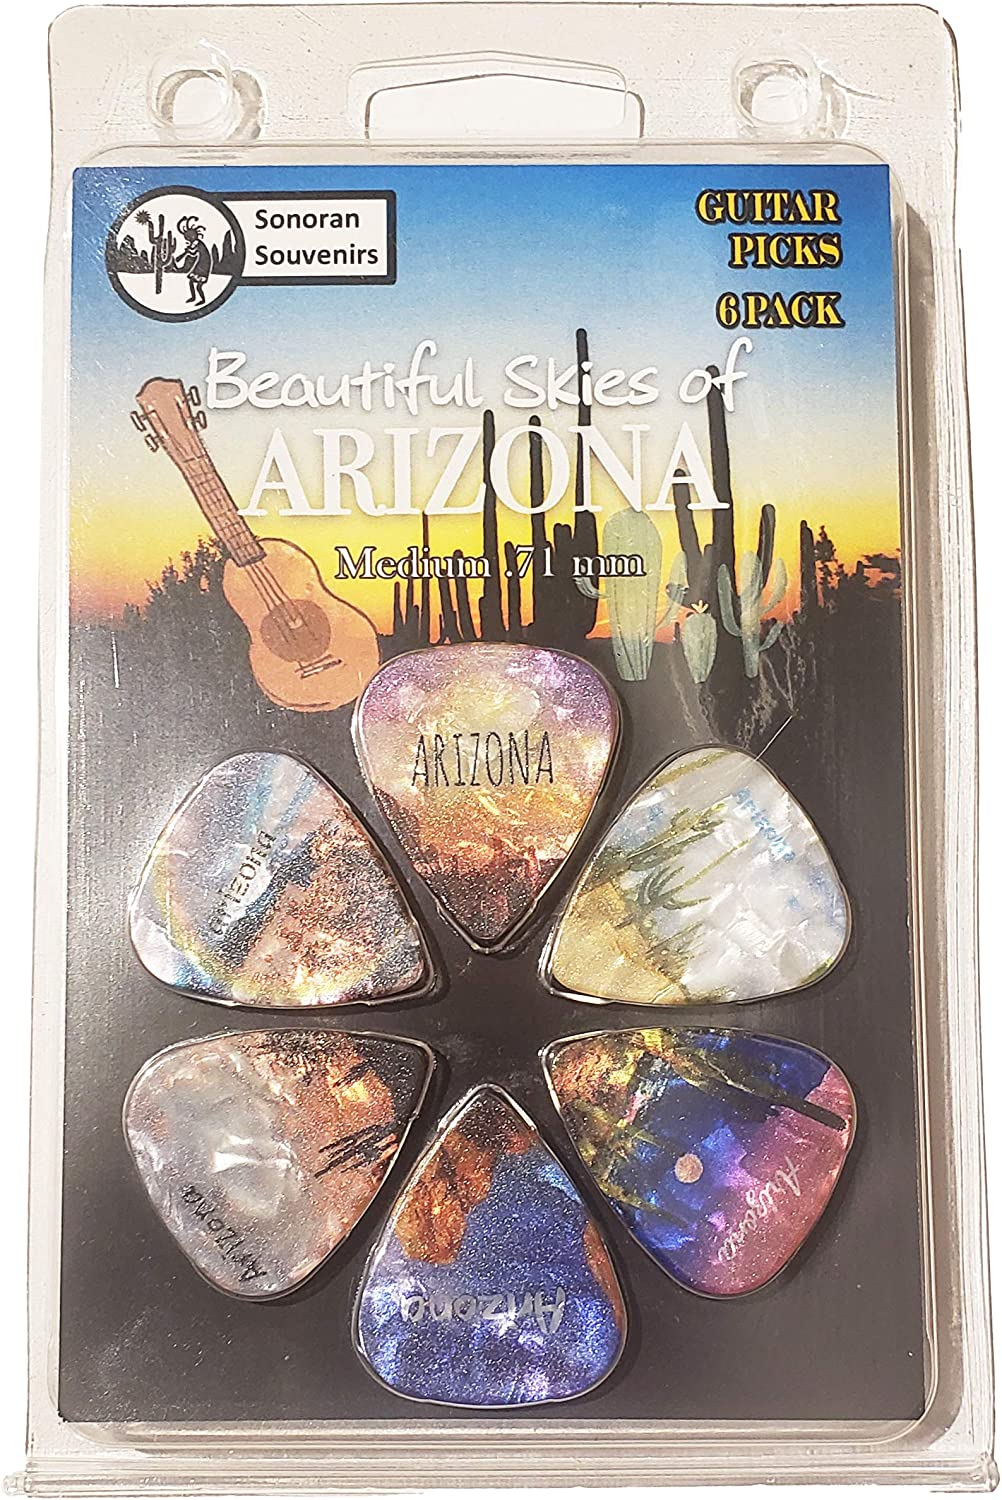 ARIZONA Souvenir Gift Guitar Picks 6 Pack Medium 0.71mm Skys of AZ Assorted Designs Perfect Gift For Guitarist For Acoustic Electric and Bass Guitars